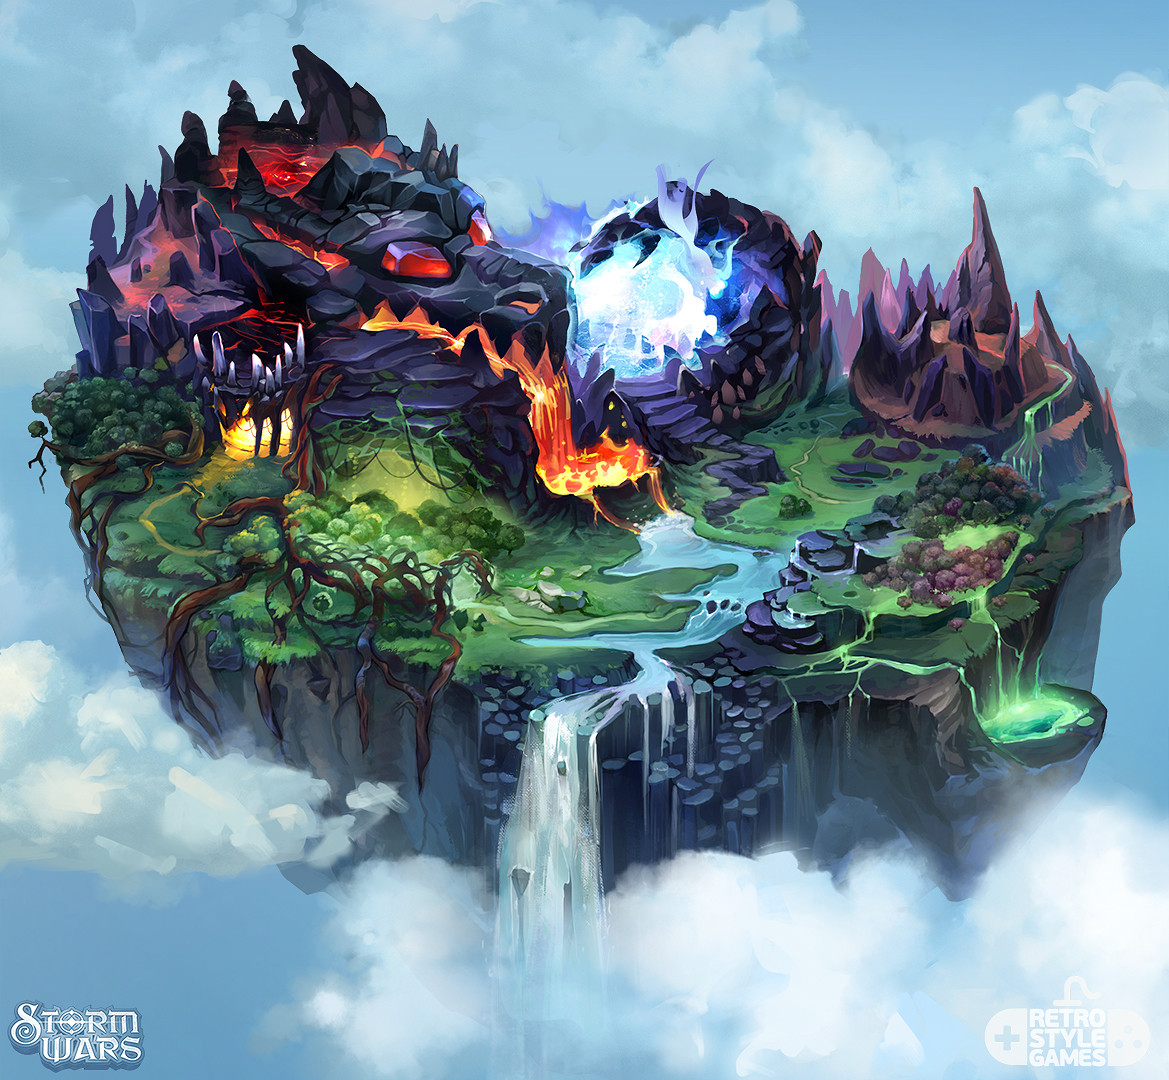 ArtStation   Storm Wars   Flying Dragon Island 2D Map  Dariia Anfalova